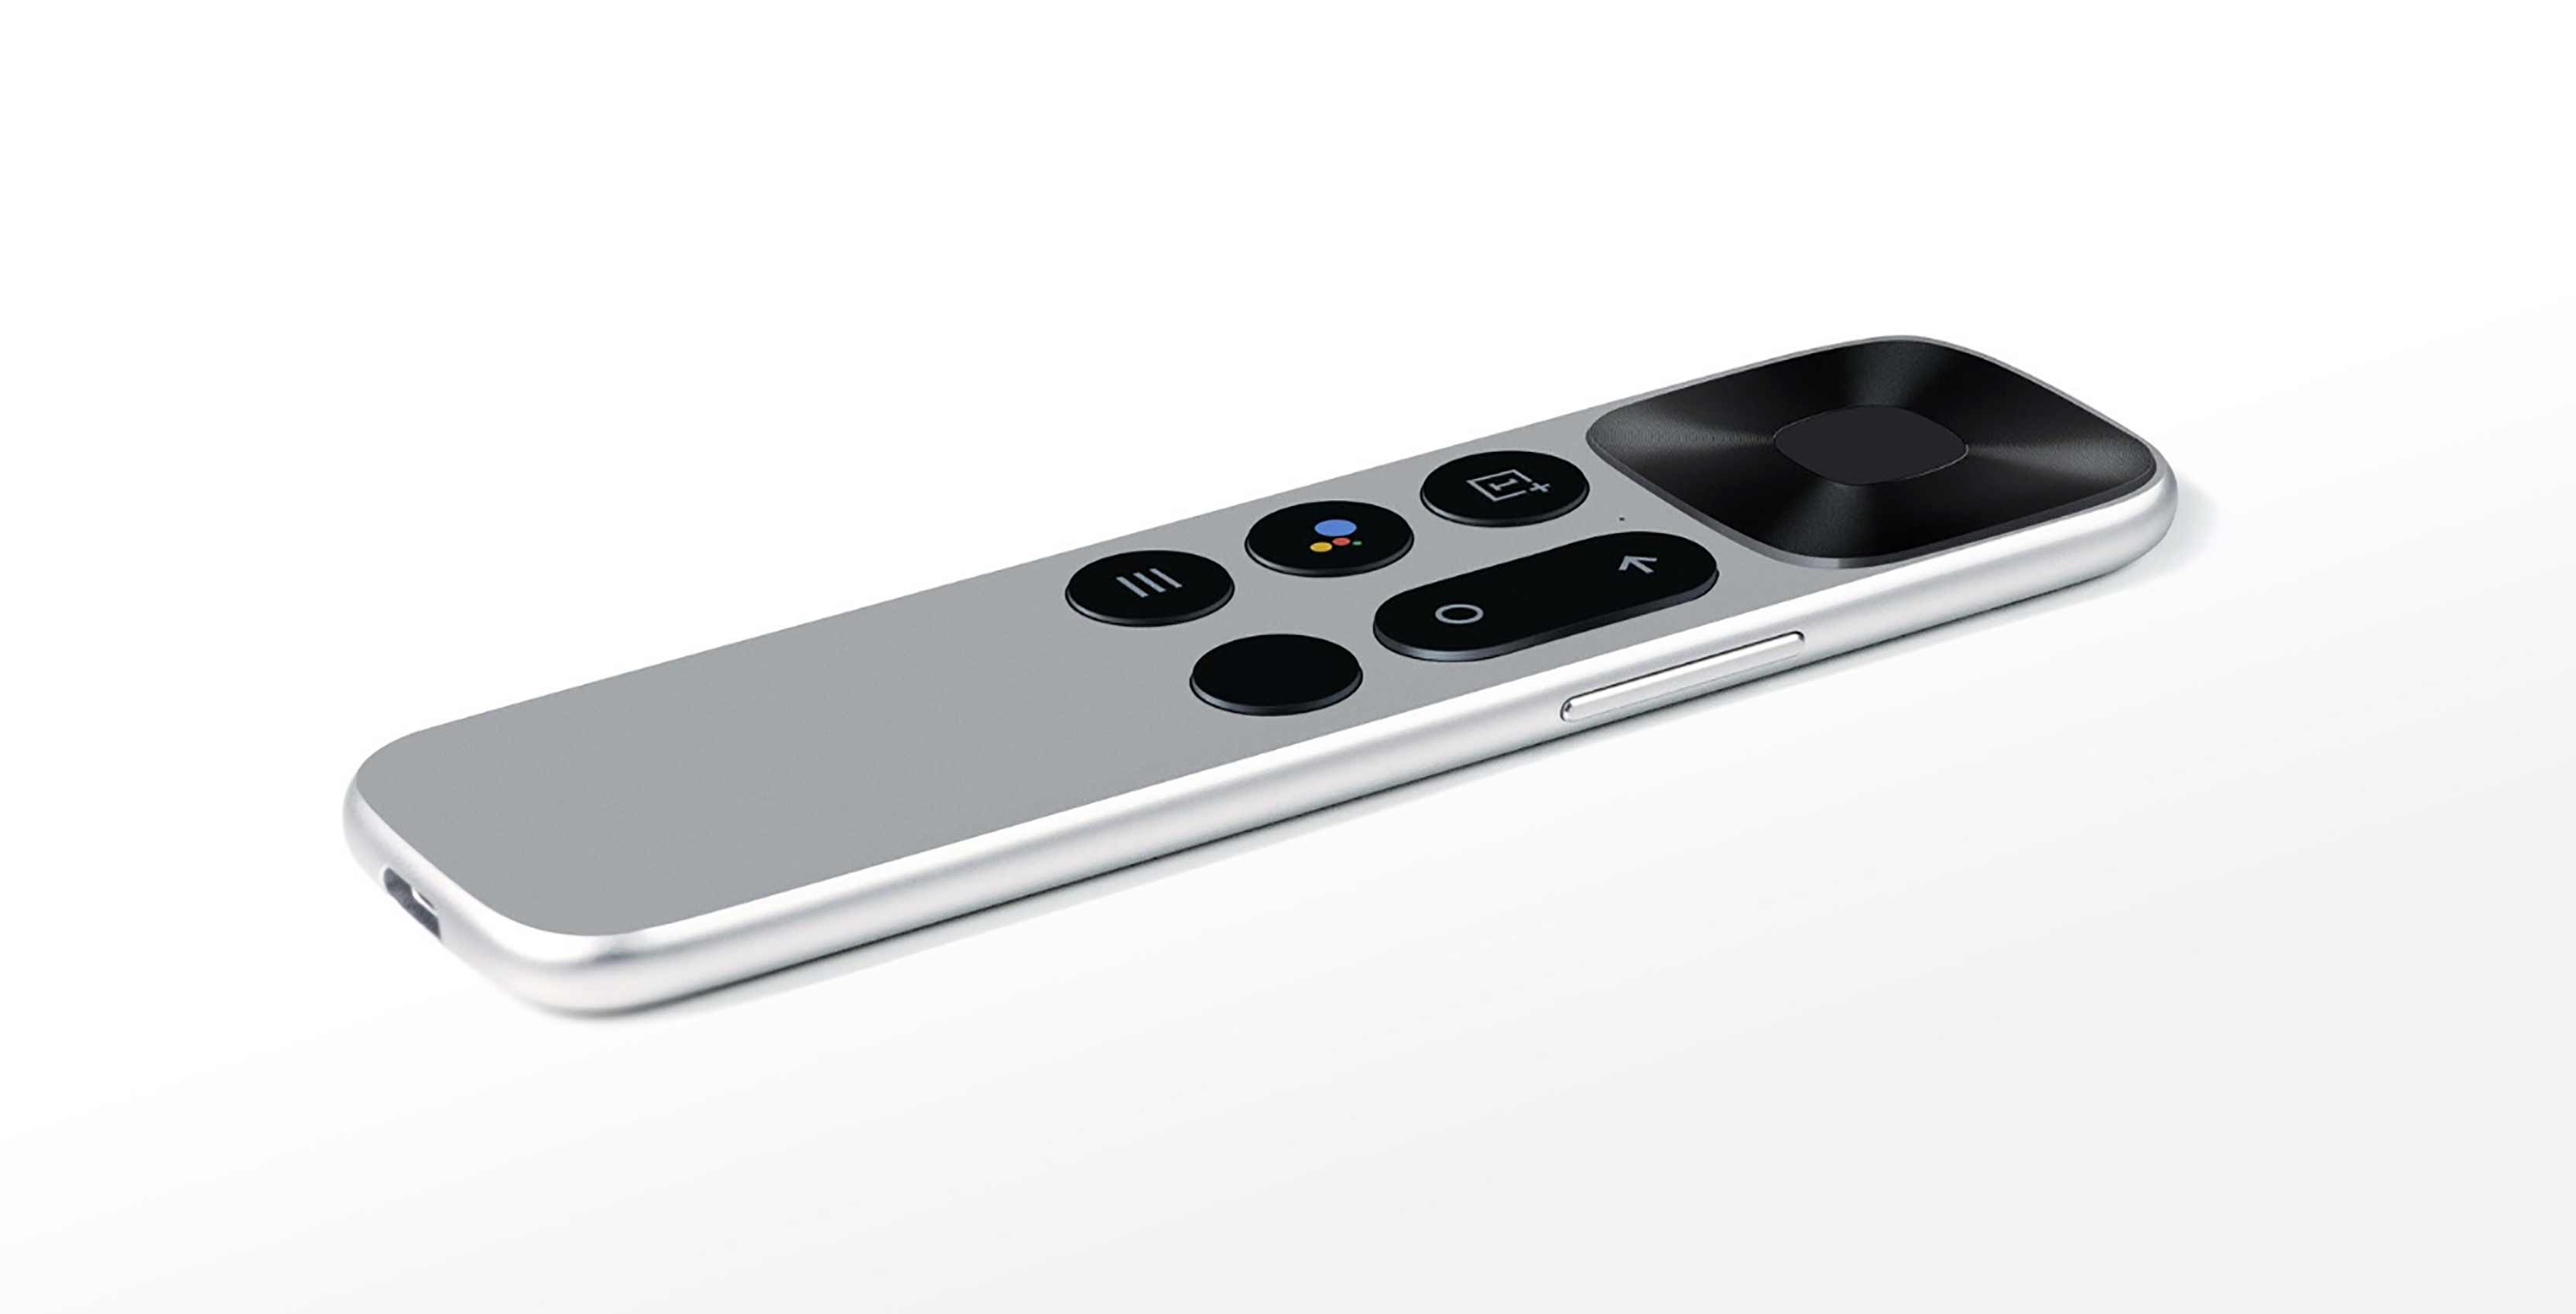 OnePlus TV remote